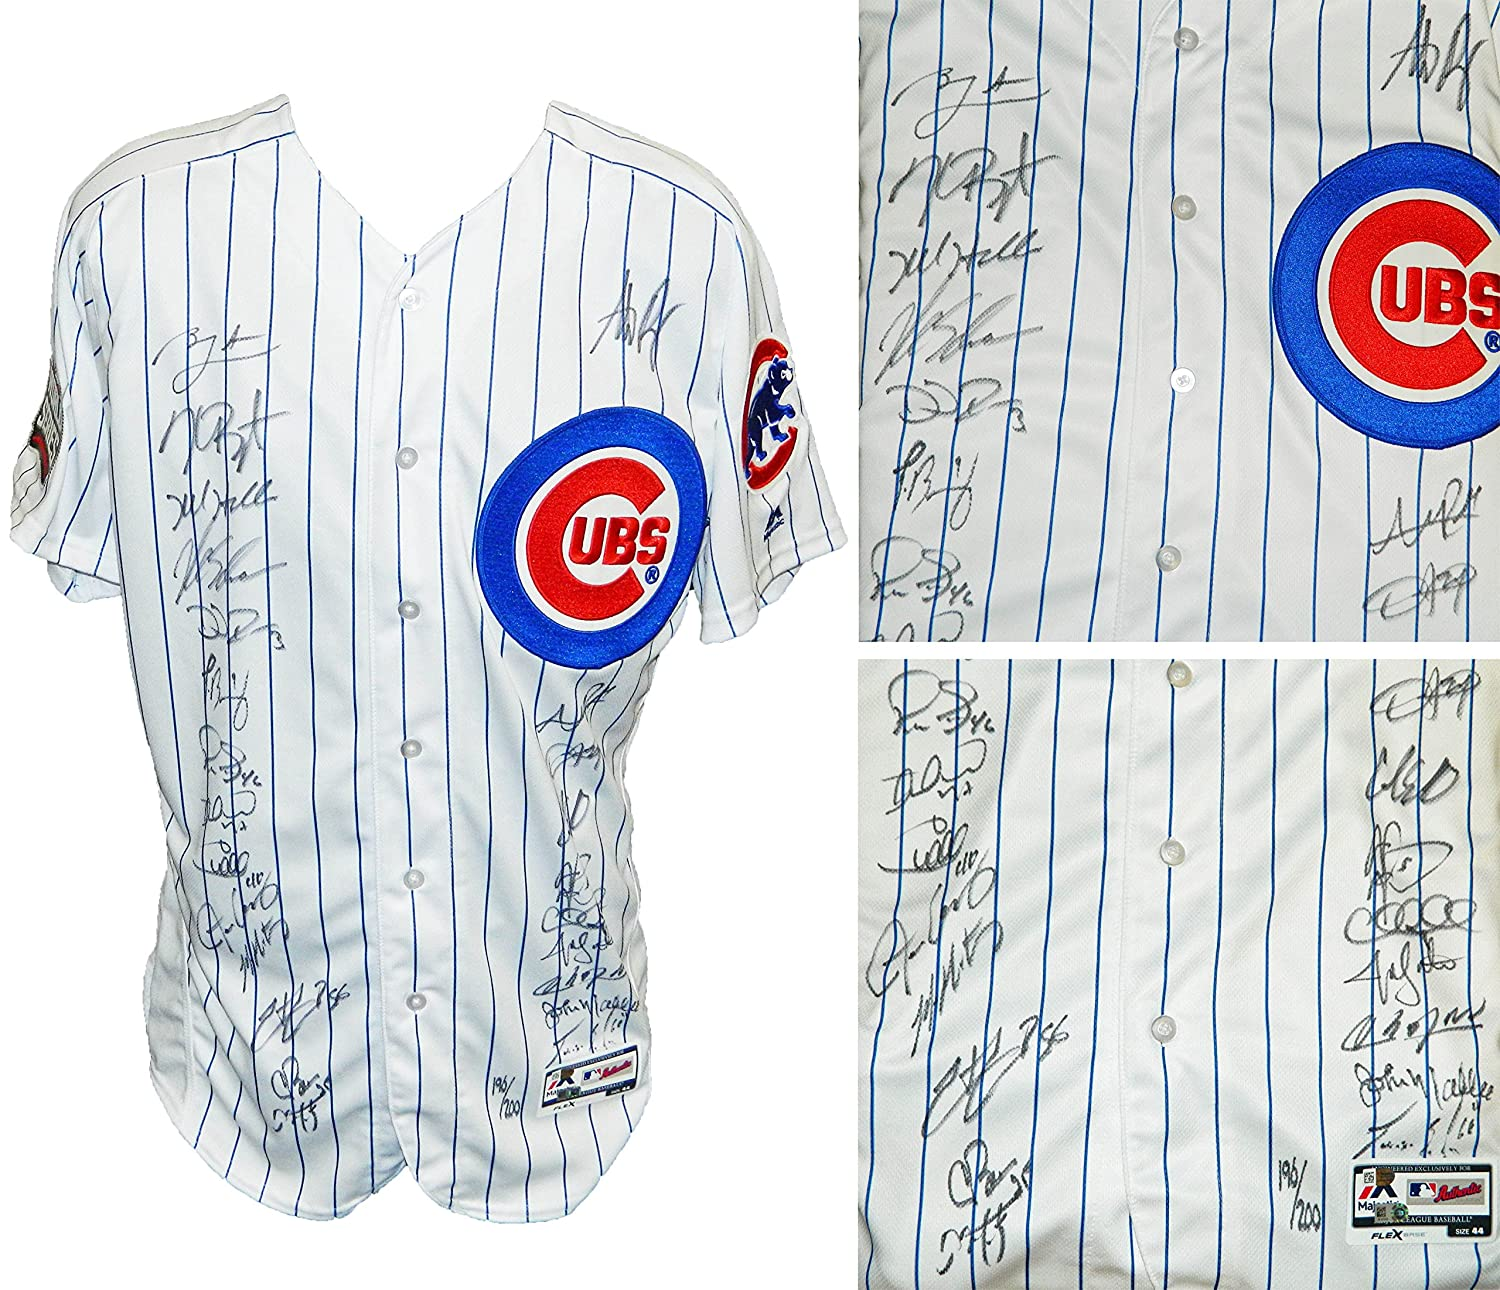 huge selection of 8e05c efd3f 2016 Chicago Cubs Team Signed Chicago Cubs White Pinstripe ...